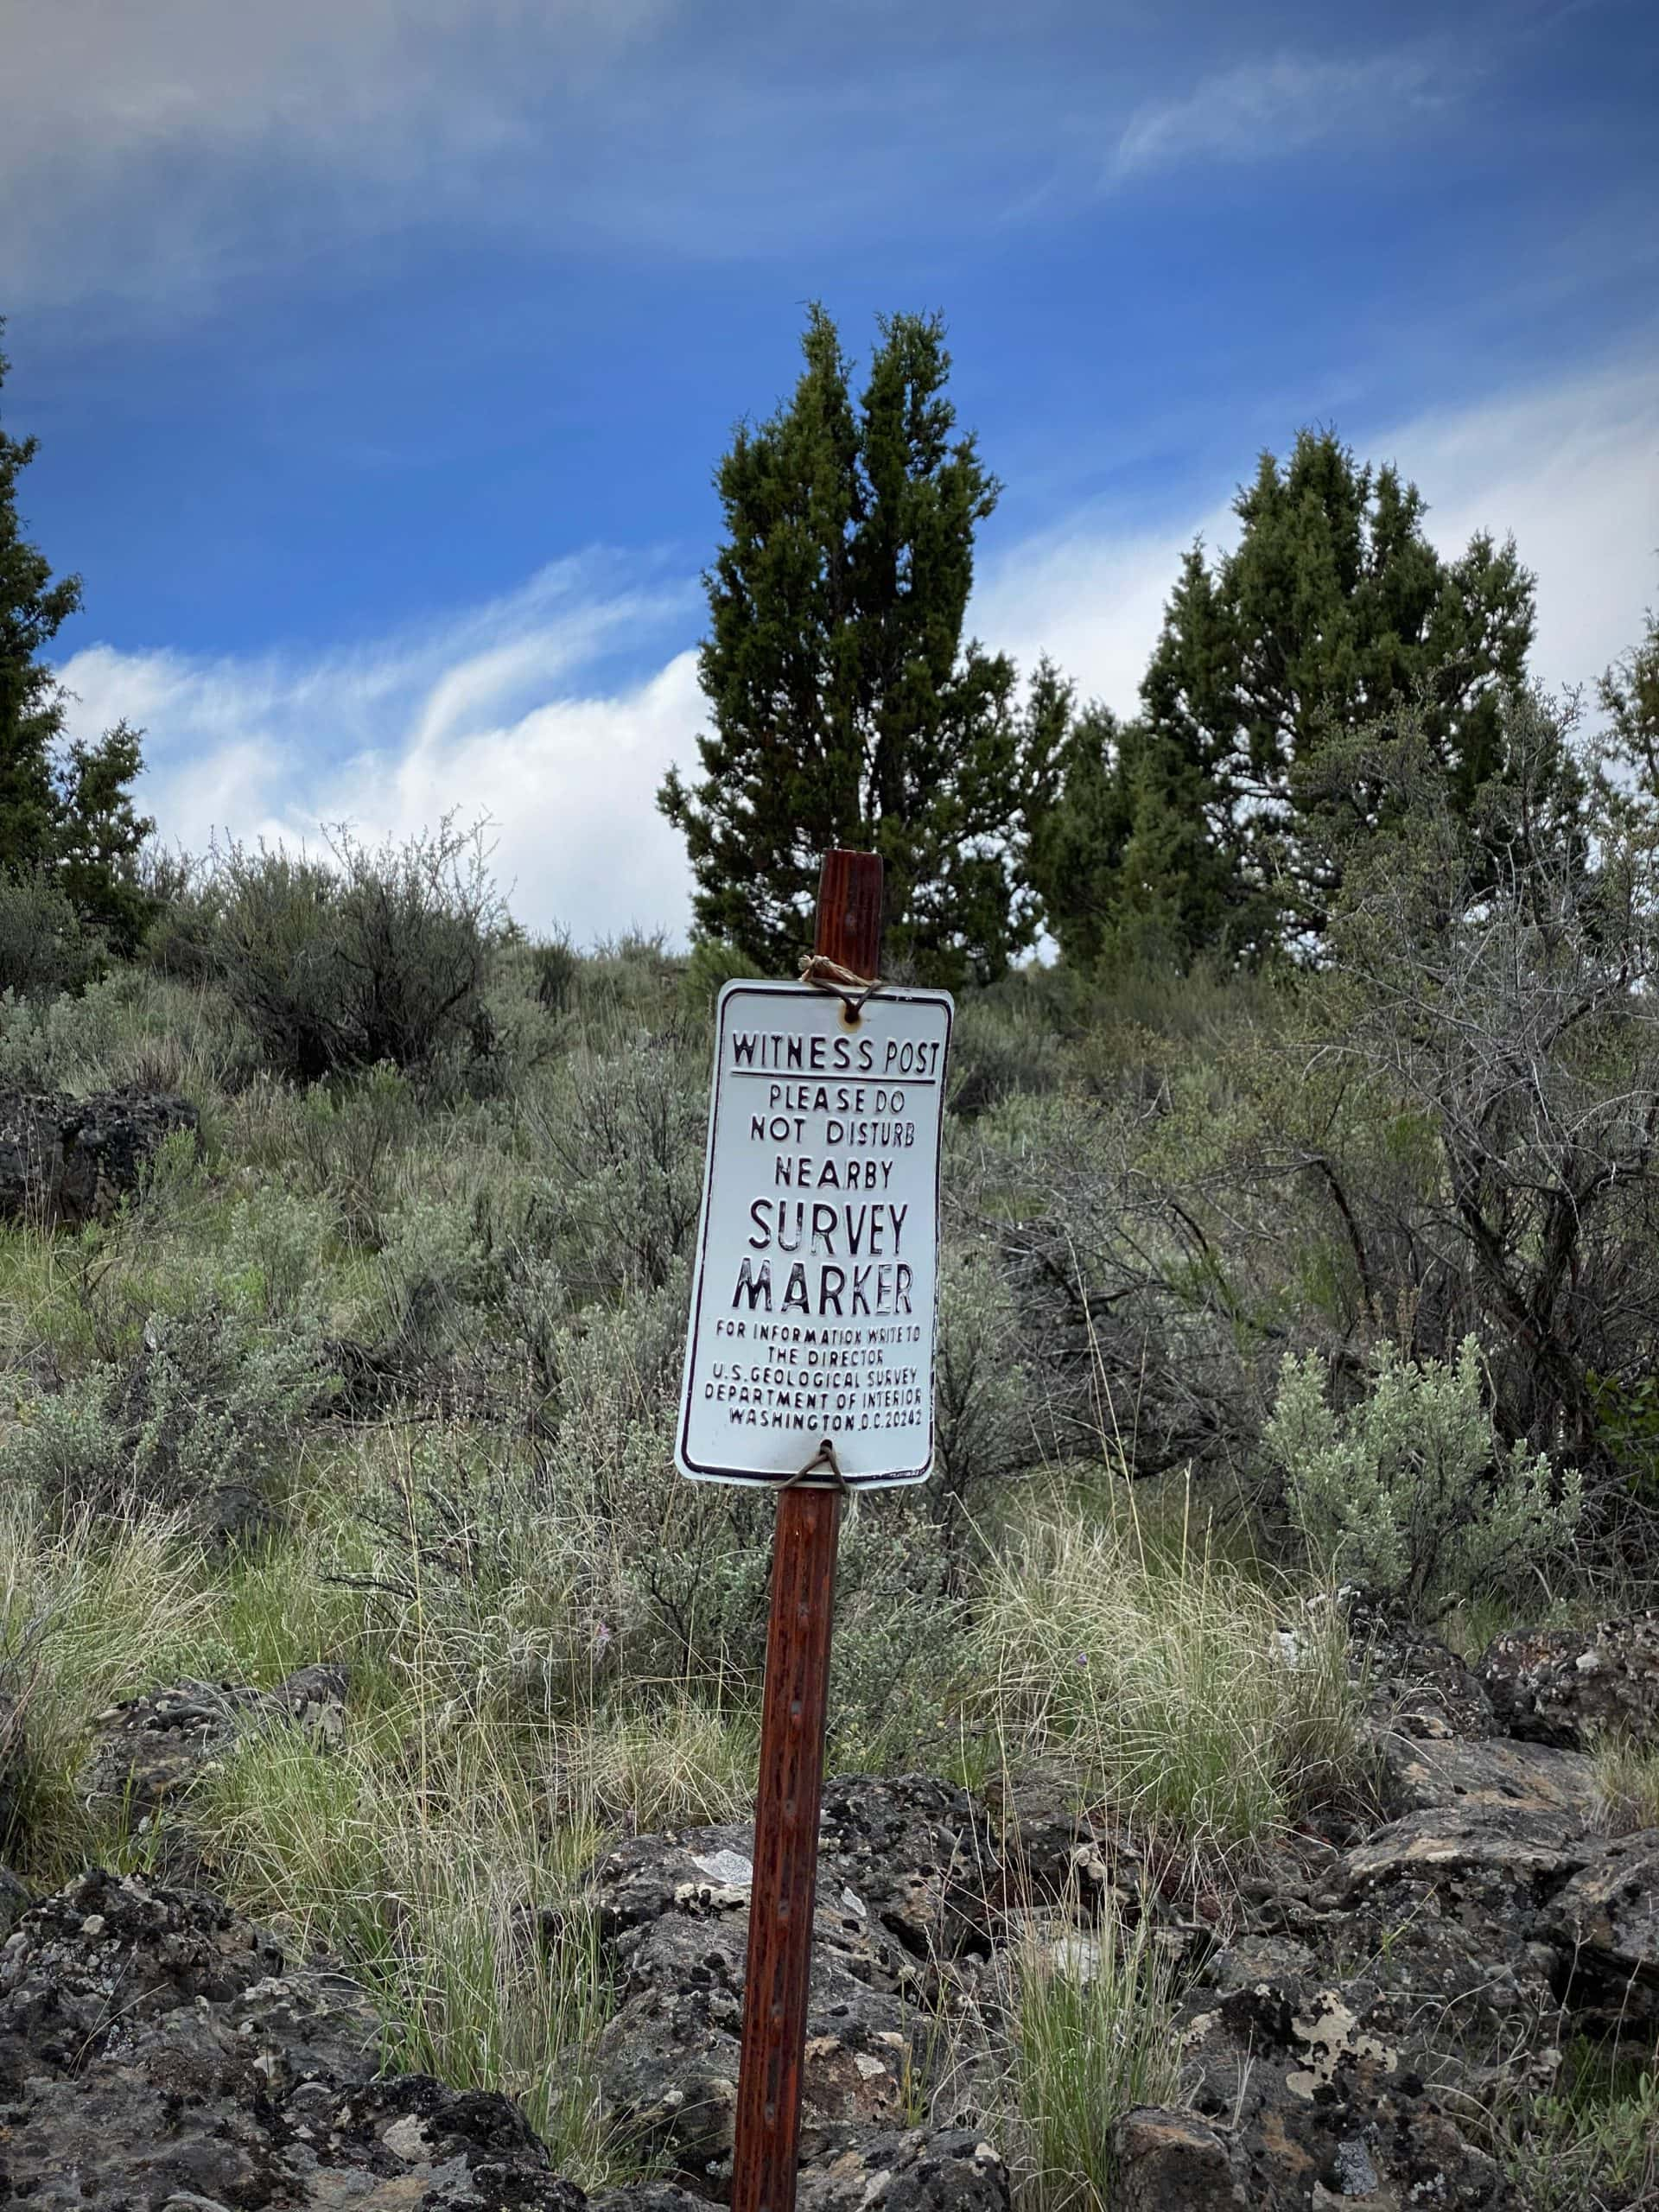 Survey marker sign on McCanlies Road in Harney County, Oregon.